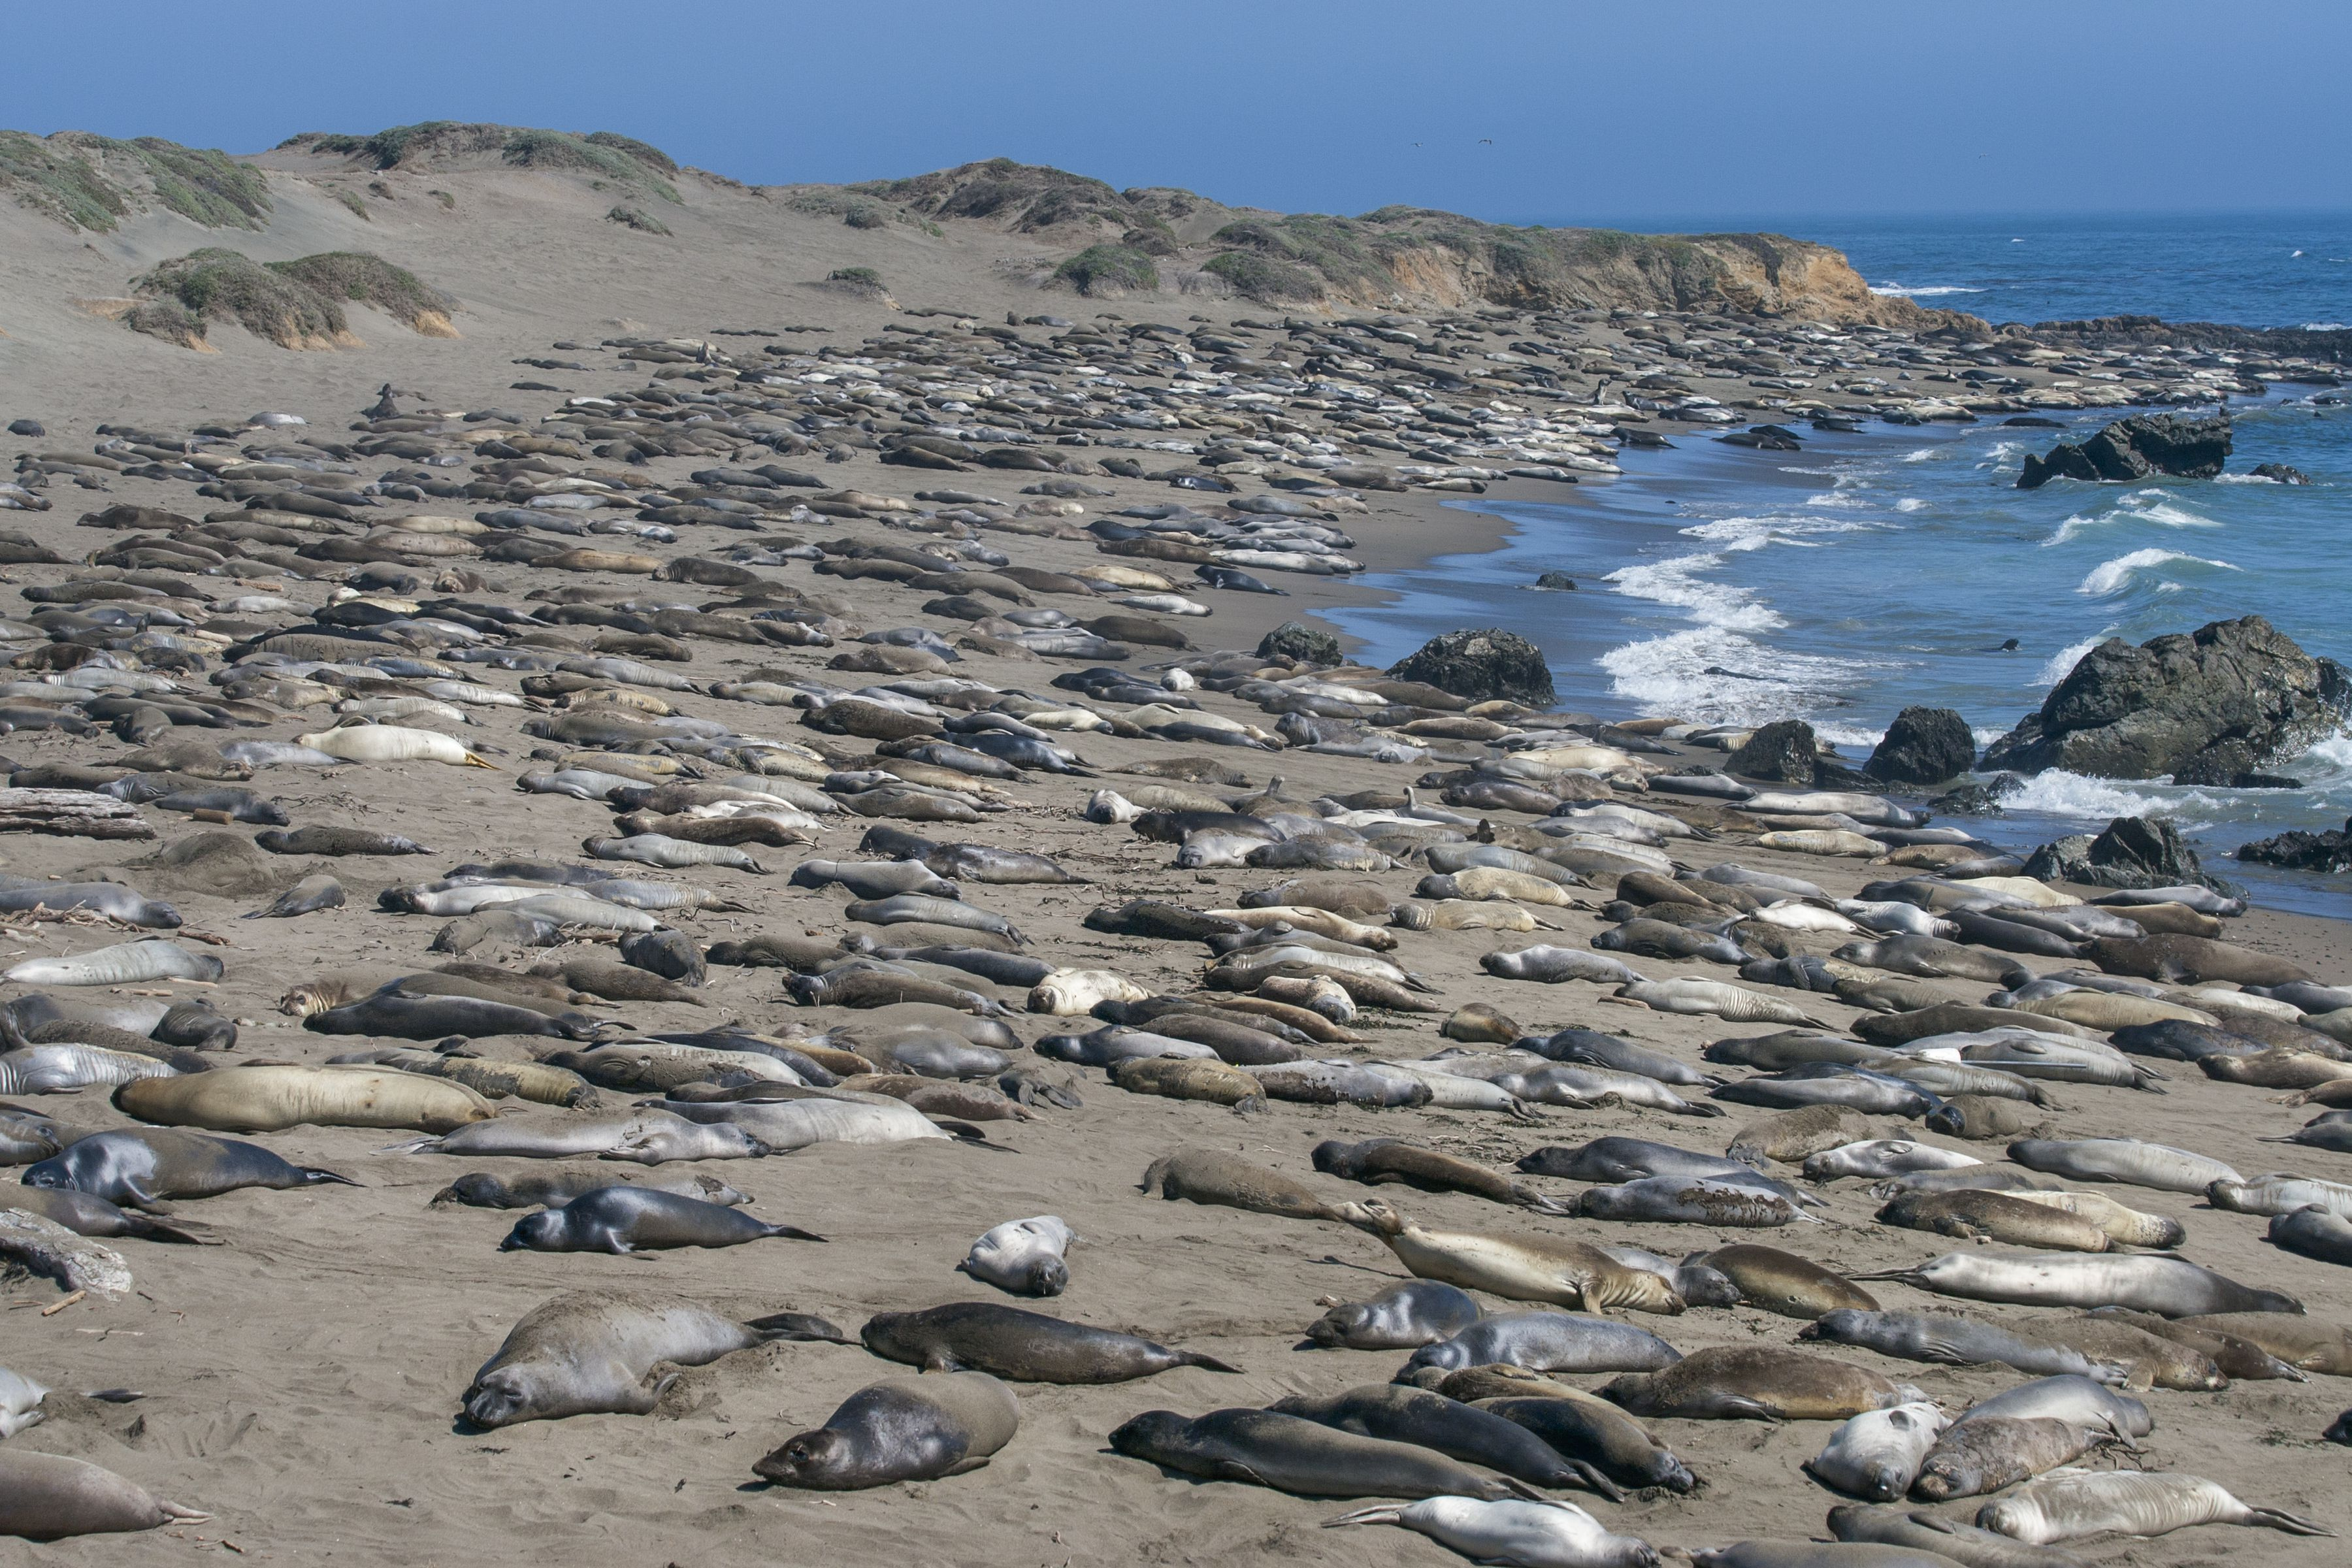 Once hunted to the brink of extinction, elephant seal numbers have recovered.